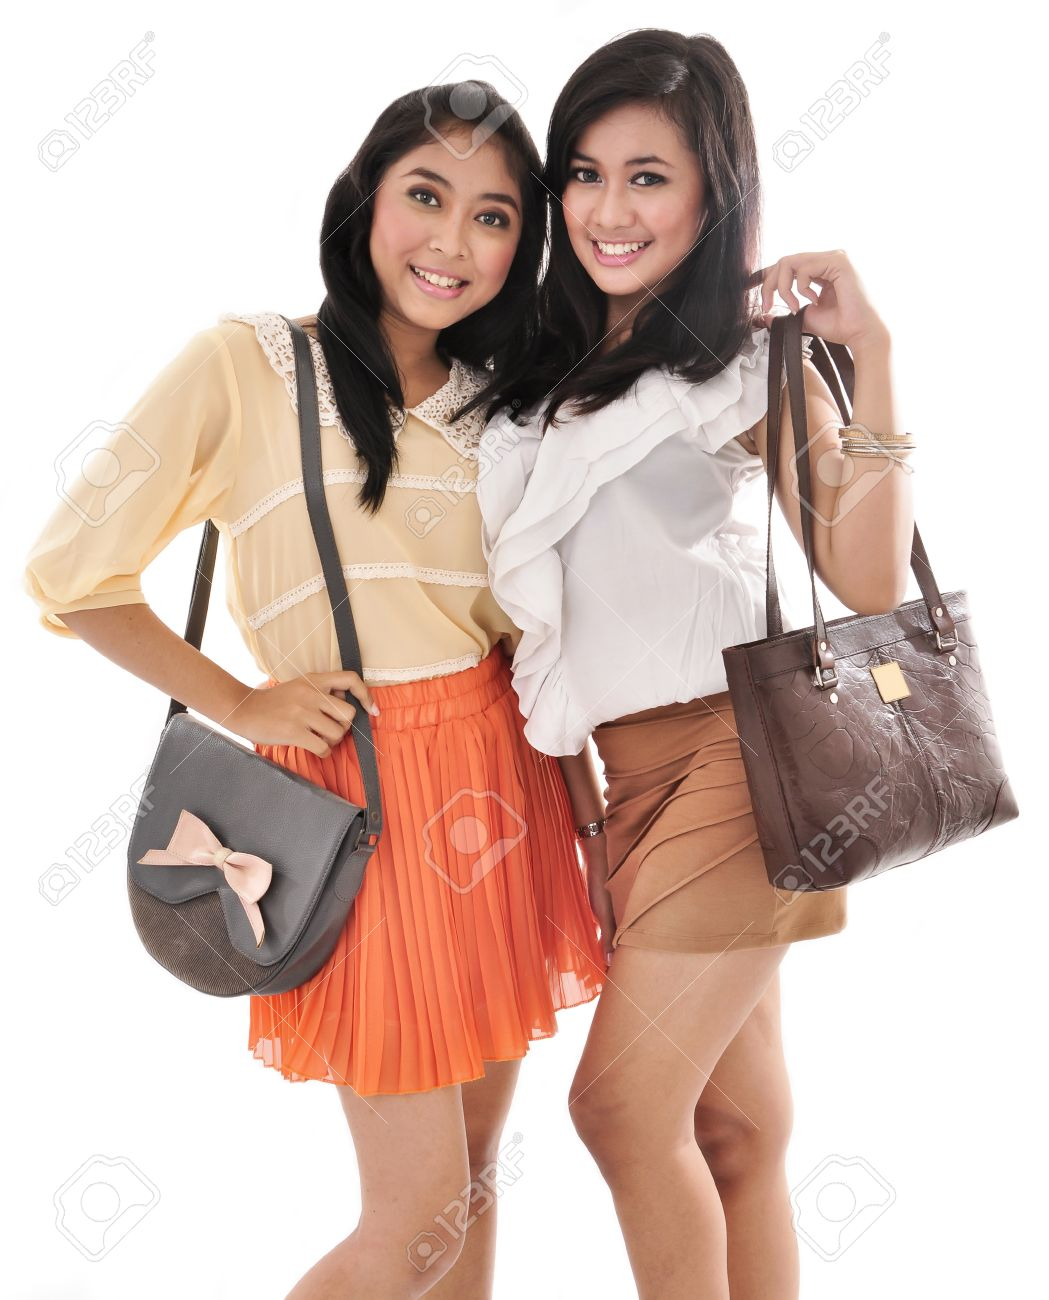 Two Sexy Girls Carrying Bags Isolated On White Background Stock Photo